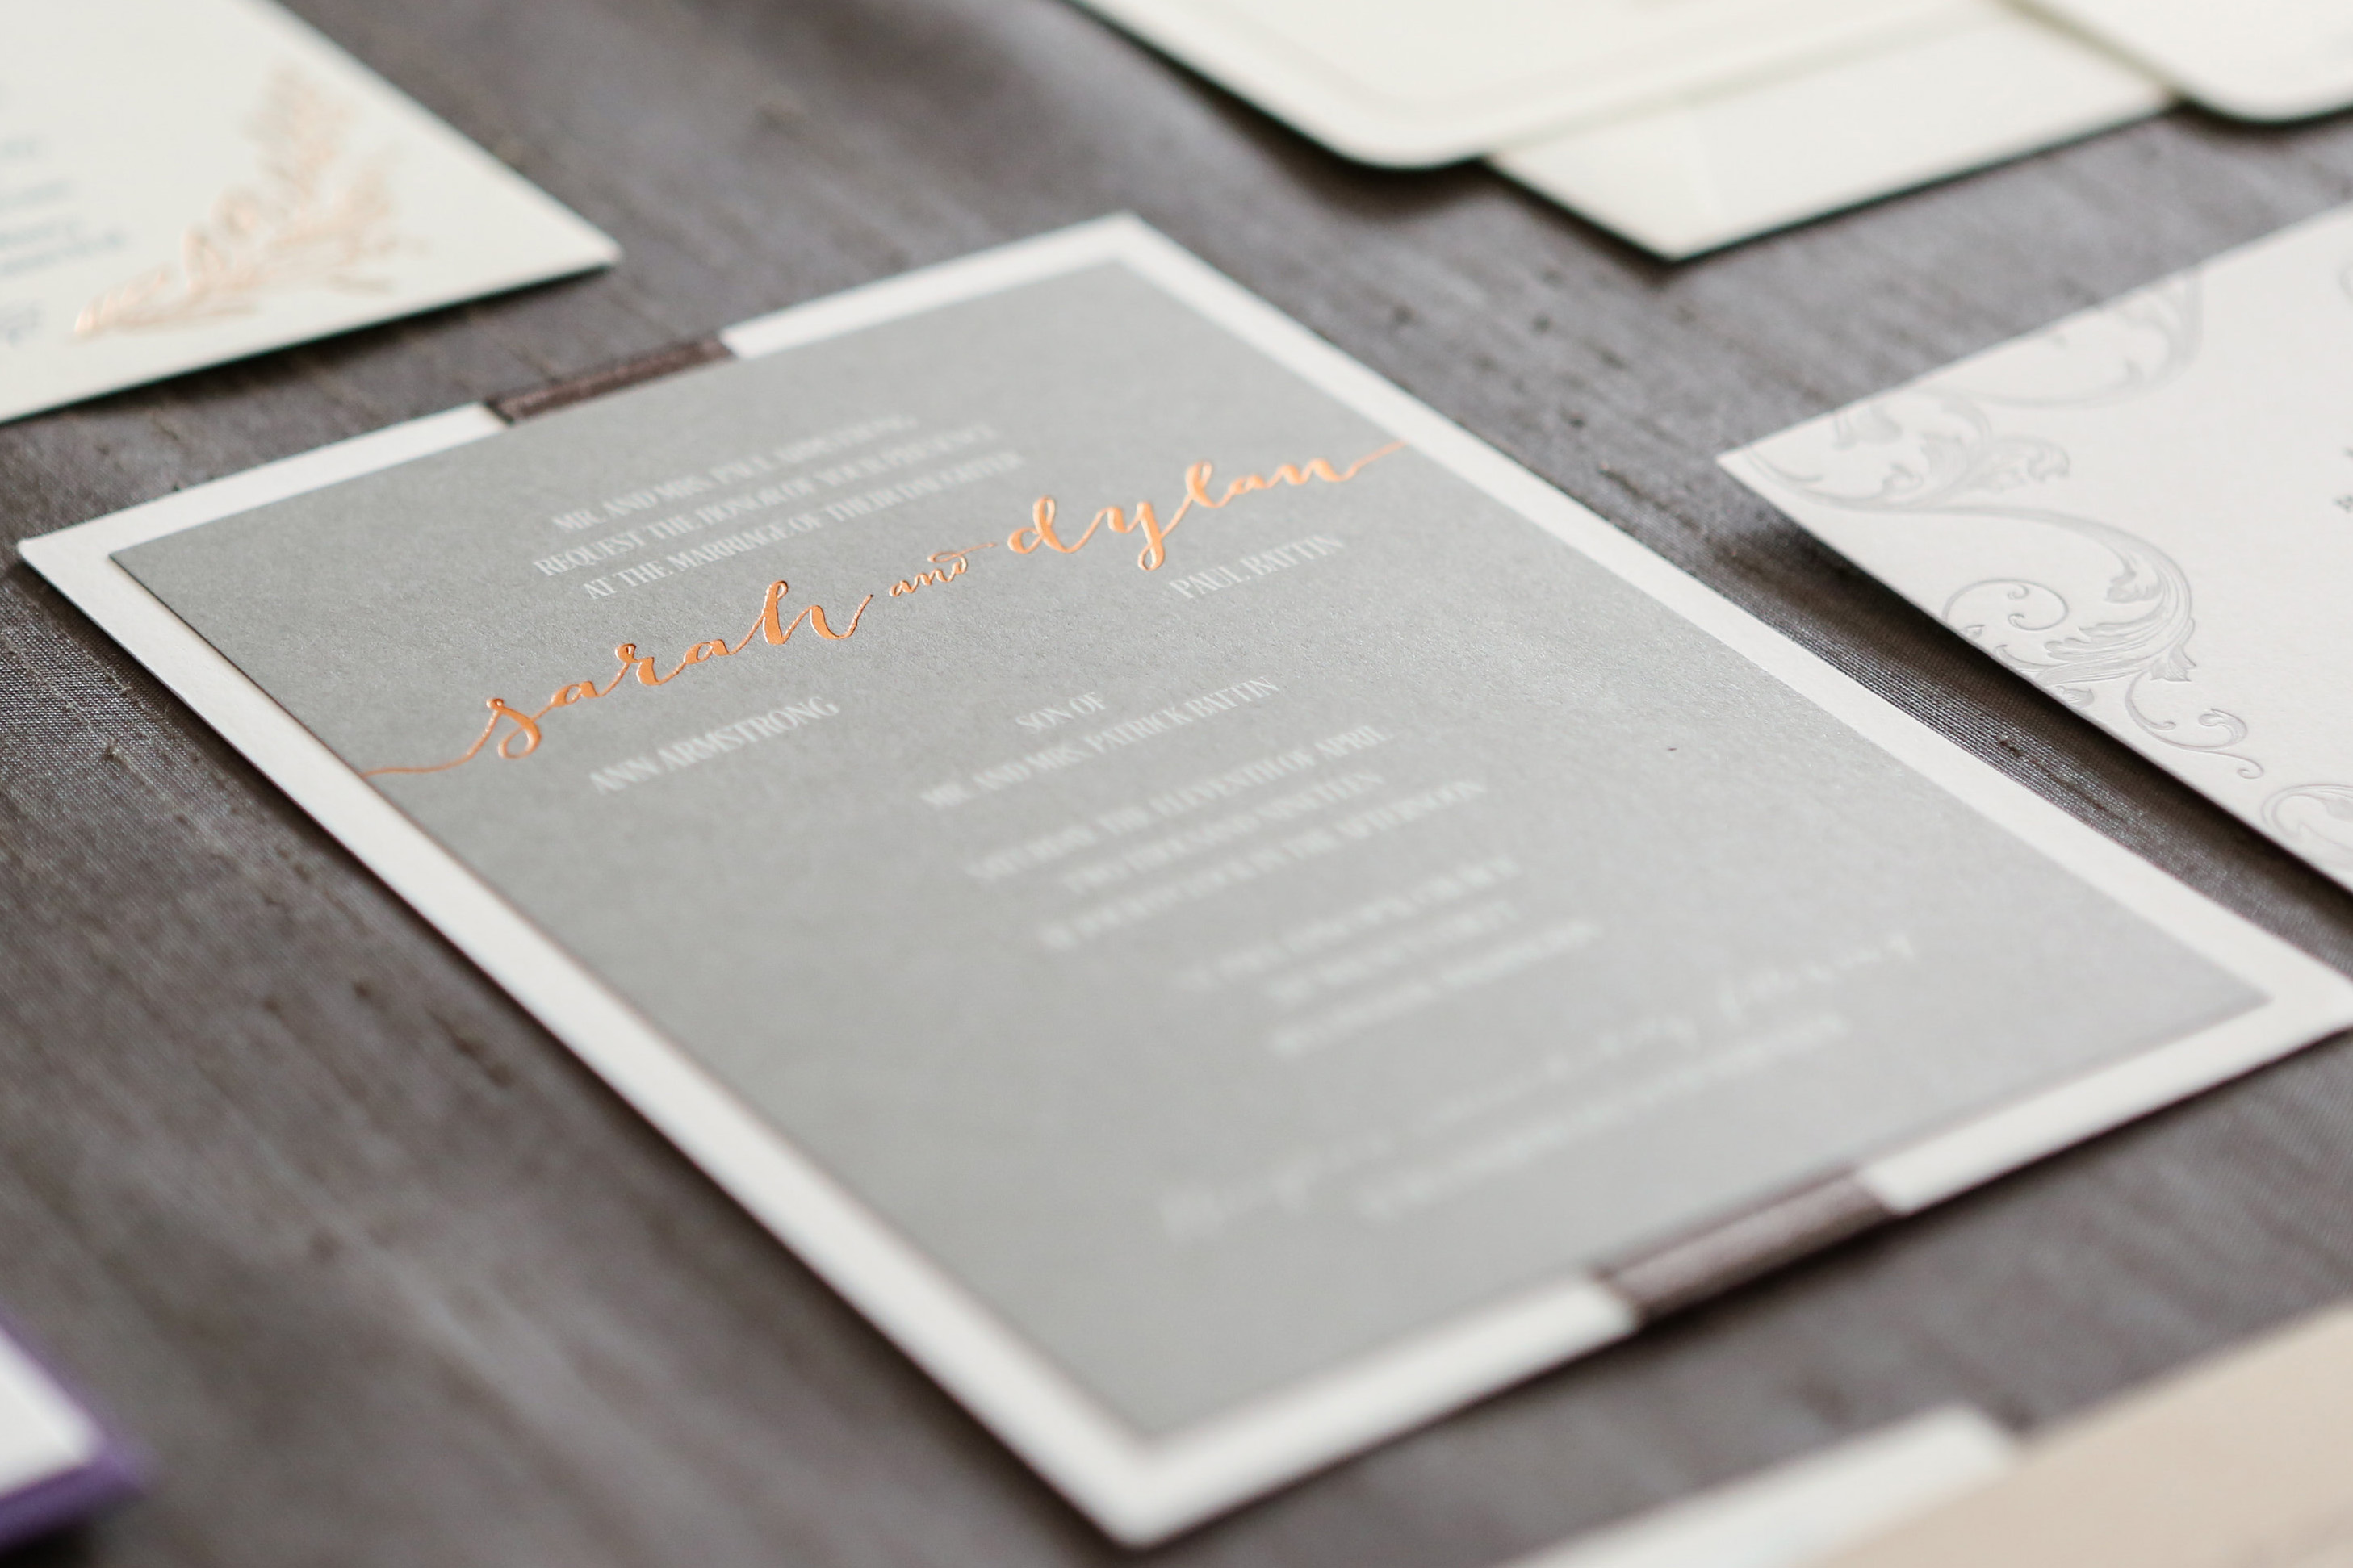 Copper foil is a stunning accent on this charcoal gray wedding invitation featuring a white backing layer and gray satin ribbon accent.